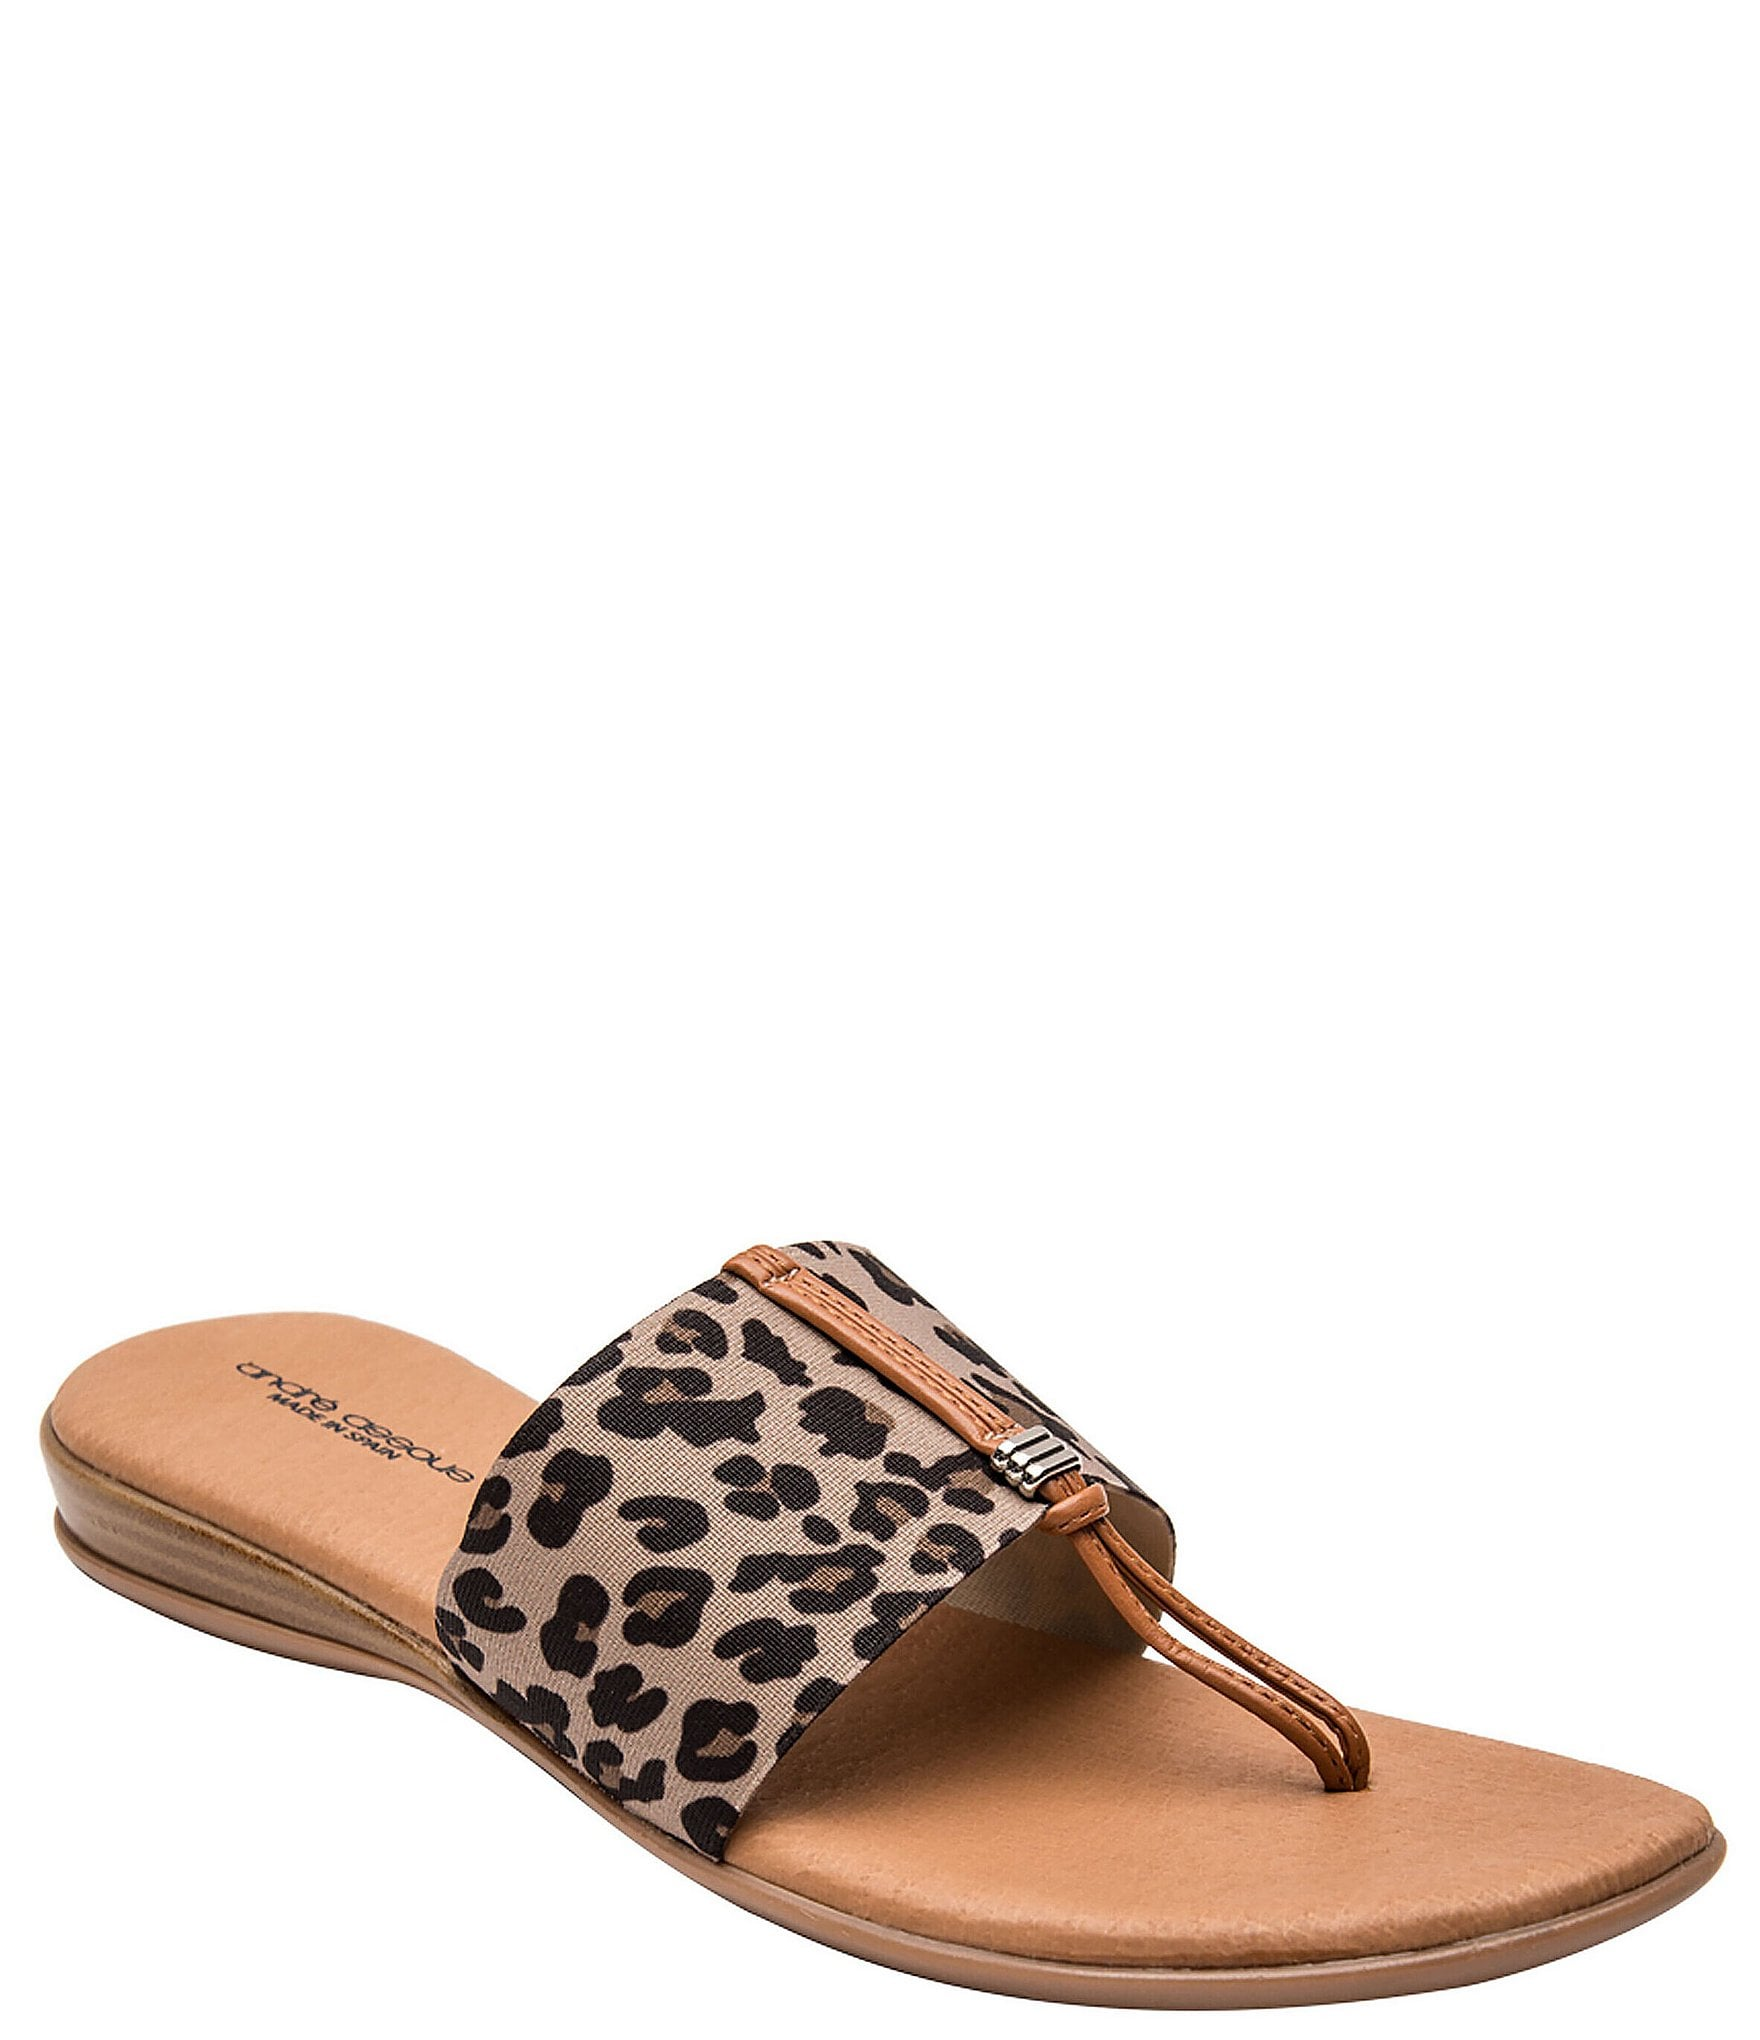 37764925125a Andre Assous Nice Leopard Slide On Thong Sandals